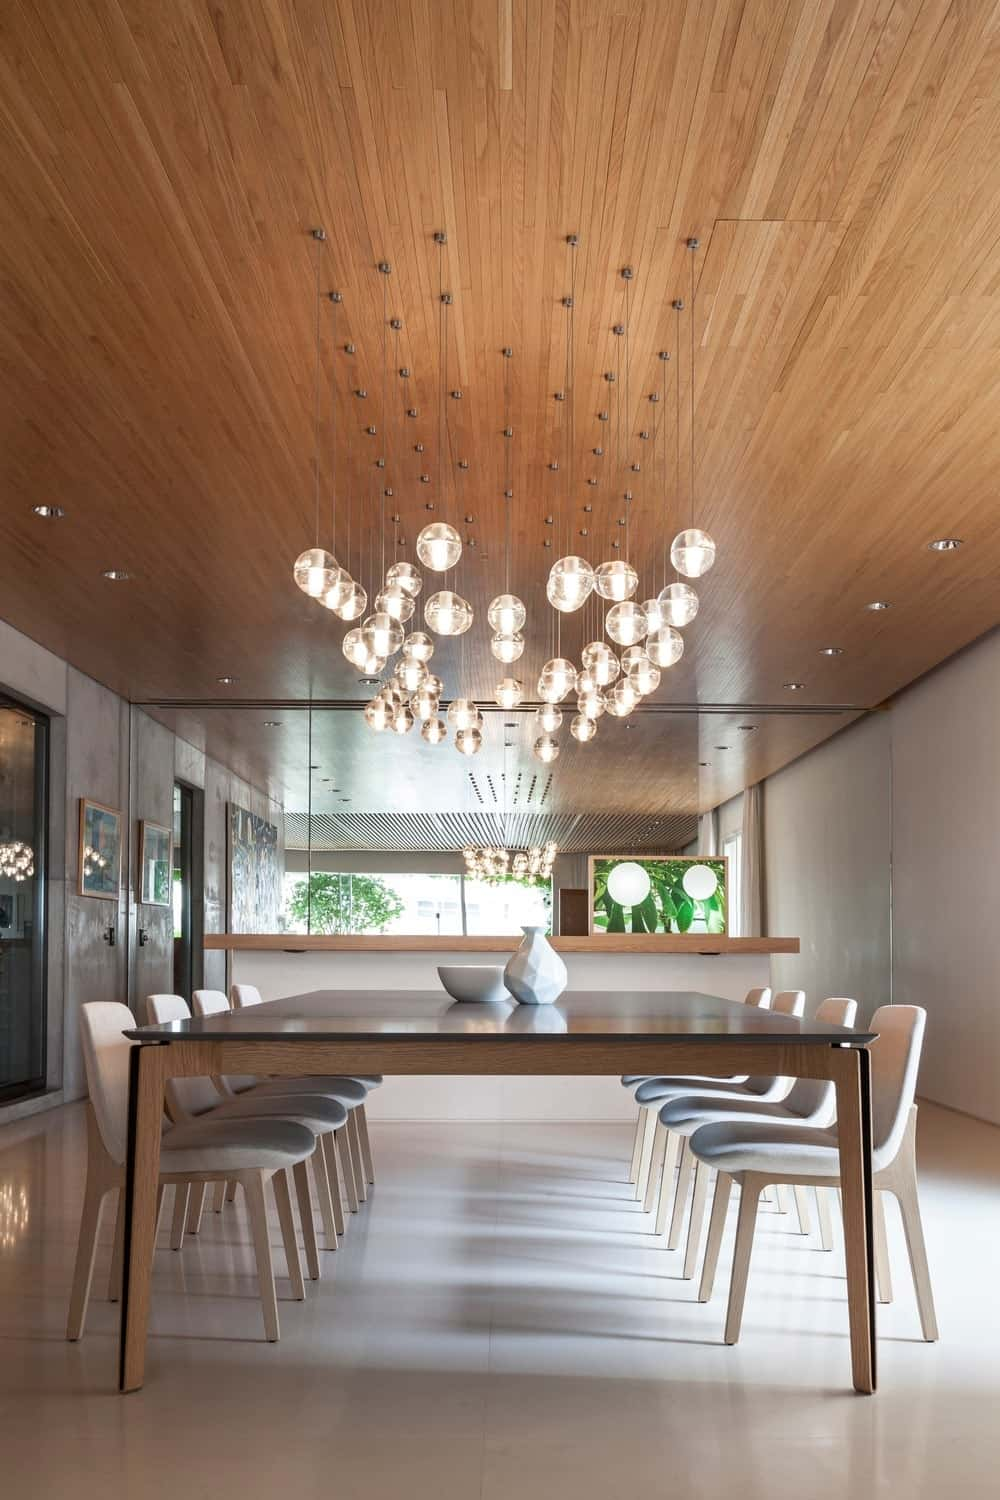 Dining room with huge 8-seat rectangular table lighted by beautiful pendant lights. Photo Credit: RuiTeixeira